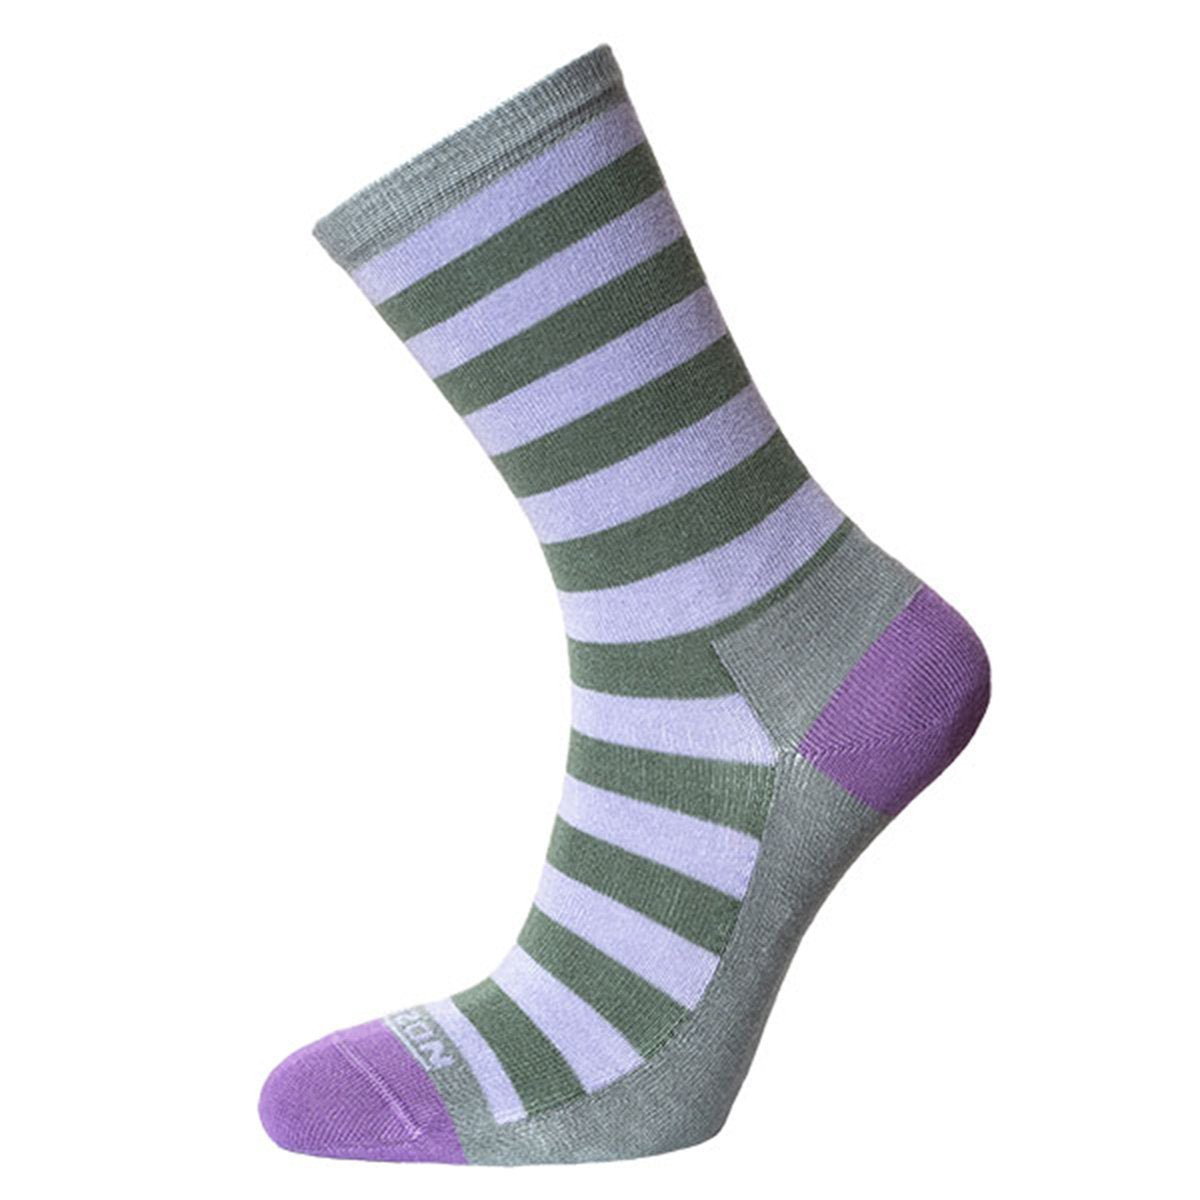 Horizon Socks » Leisure Lifestyle Women's Bamboo Socks - Lilac/Khaki